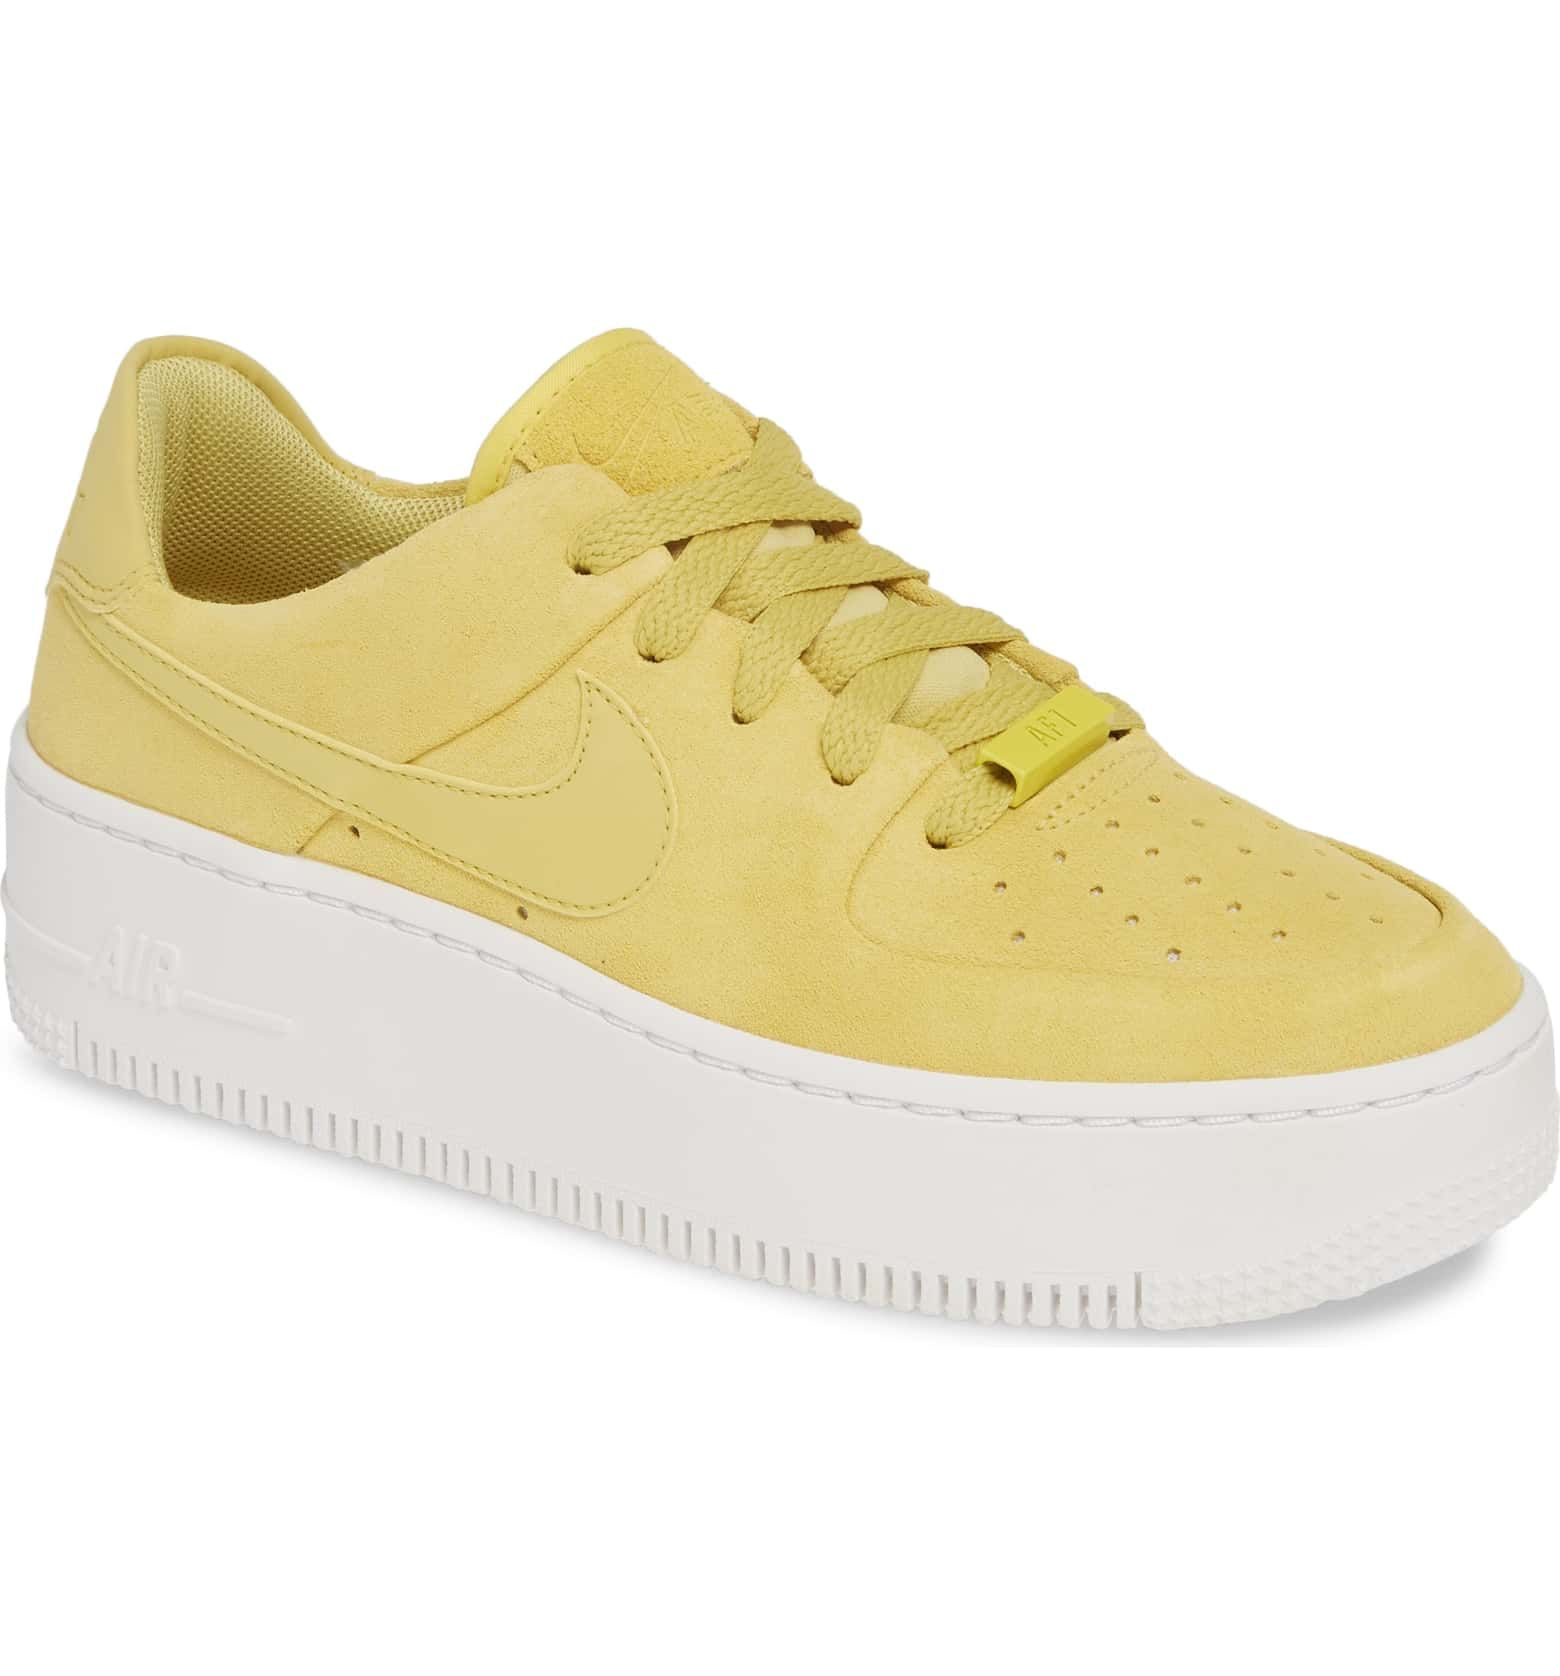 Nike Sportswear Shoes Air Force 1 Sage Low CeleryCeleryWhite